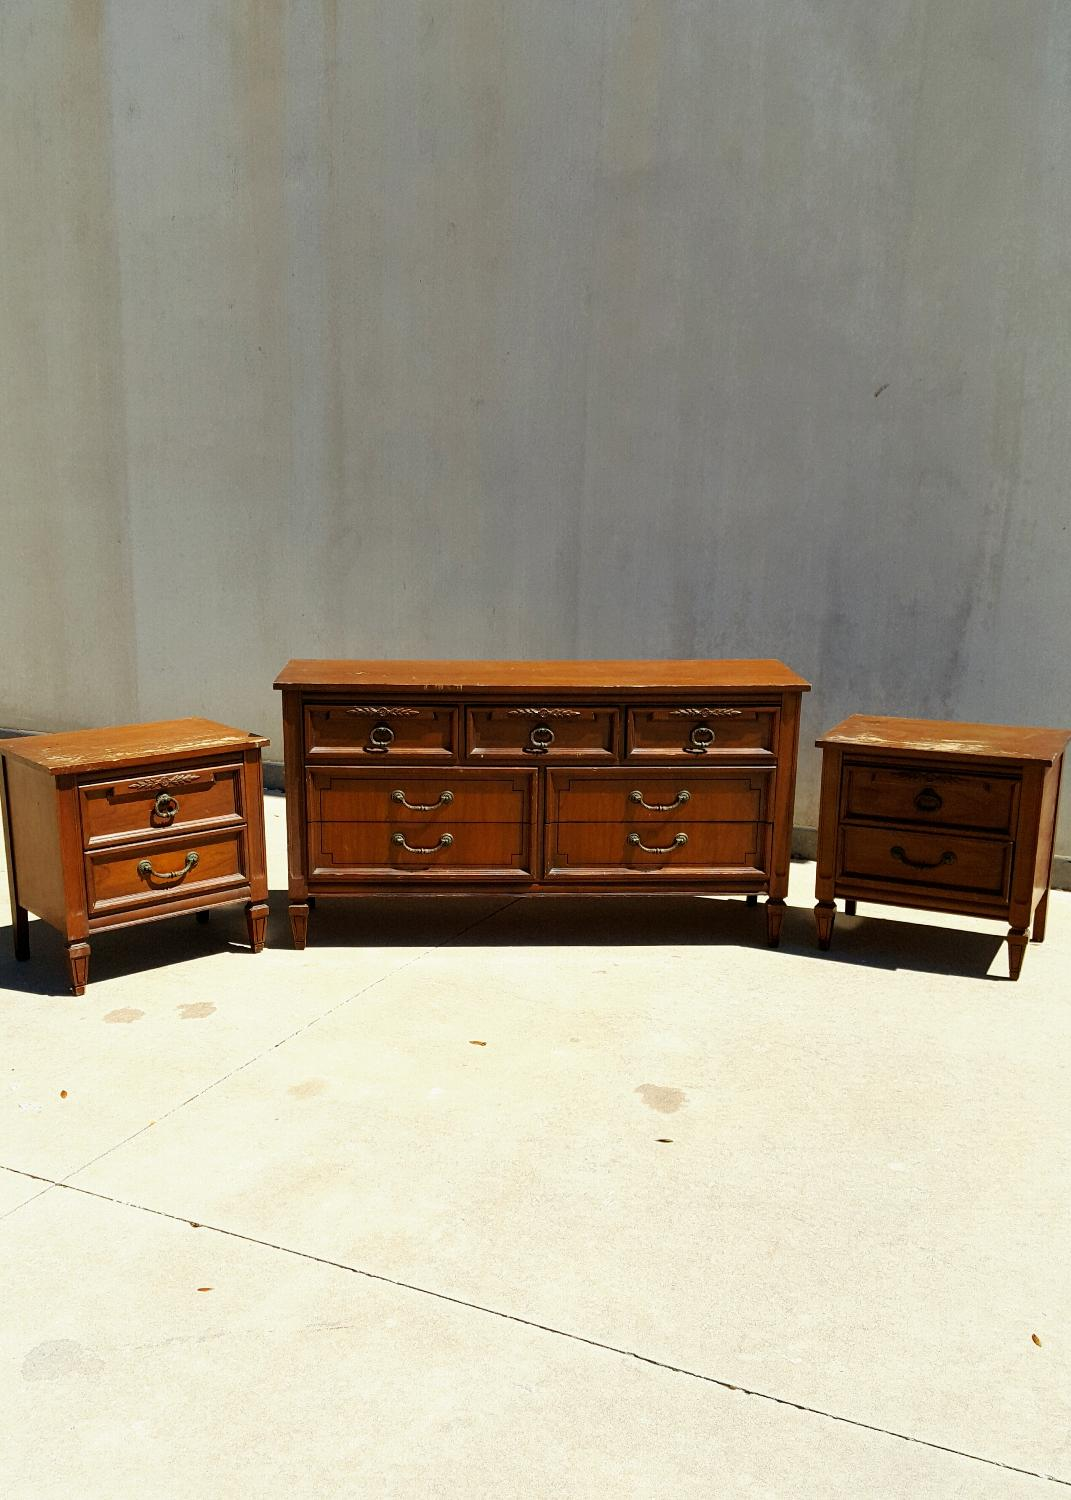 Find More Vintage Mid Century Solid Wood Dresser And Nightstands Bedroom Set For Sale At Up To